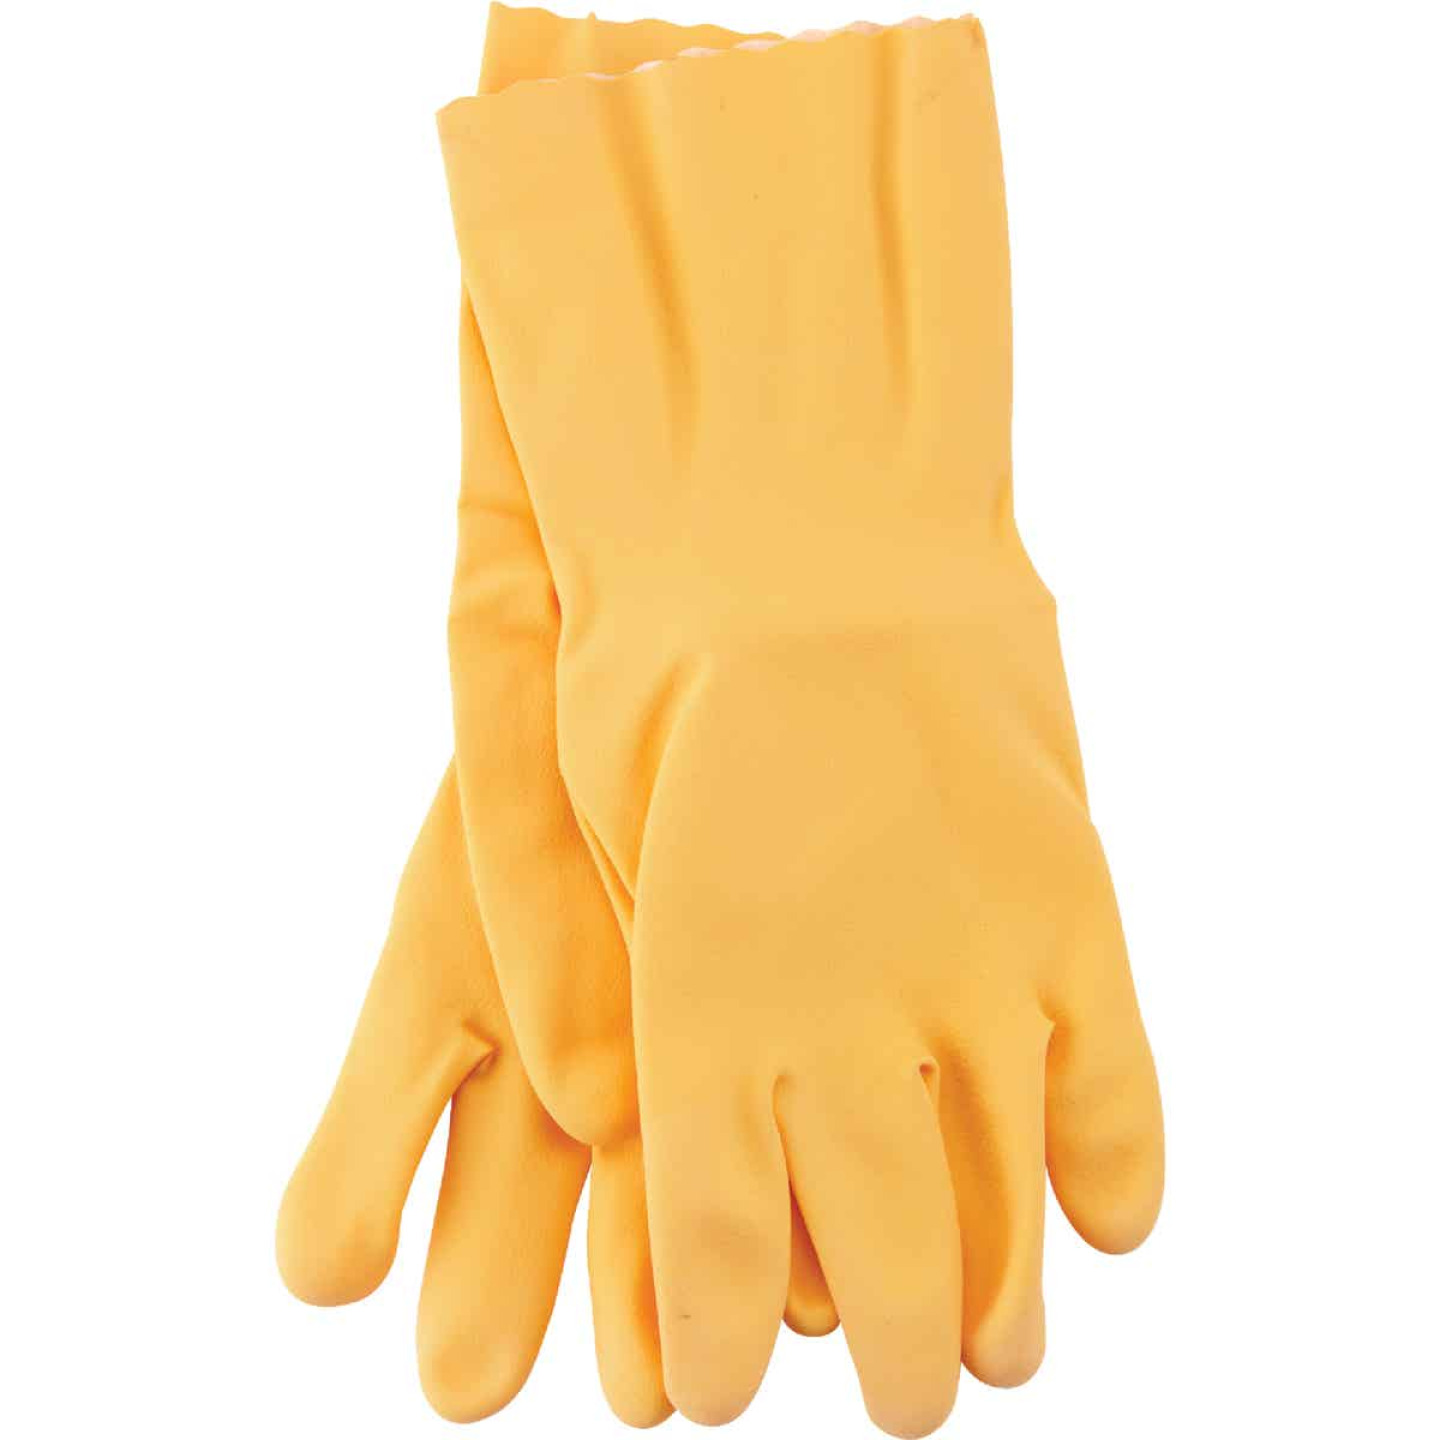 Wells Lamont Medium Latex Stripping Glove Image 1